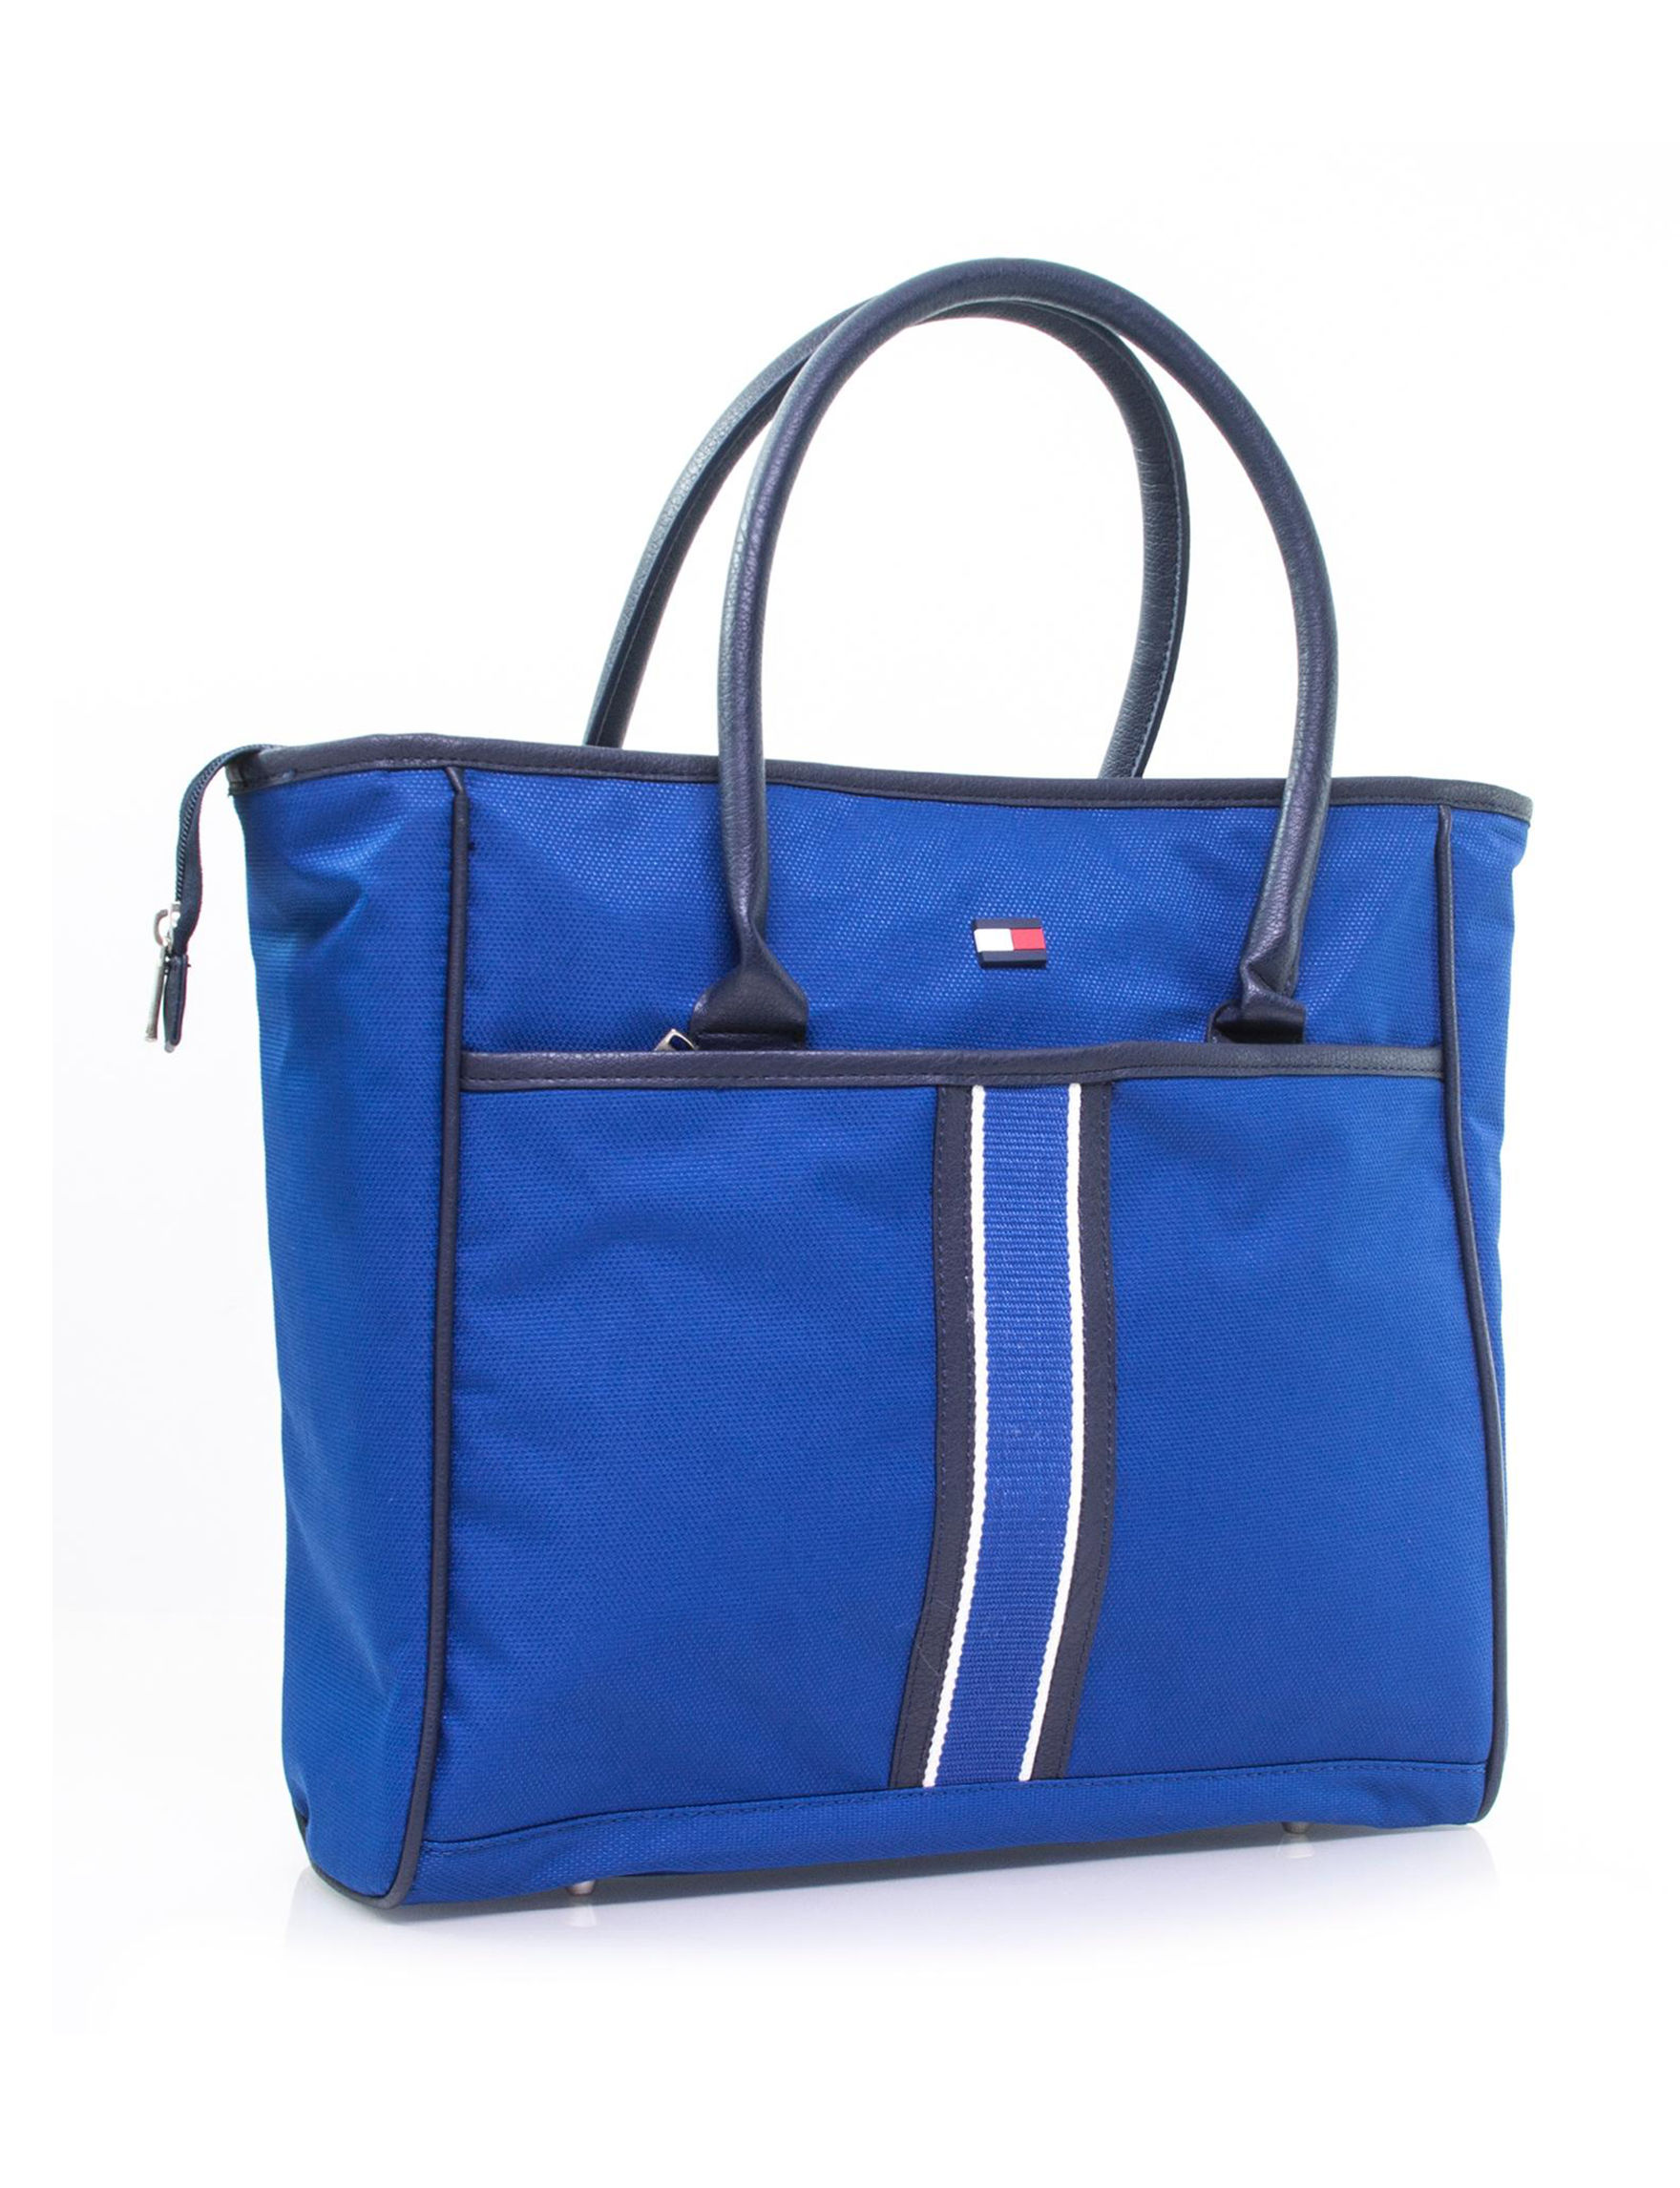 Tommy Hilfiger Blue Carry On Luggage Travel Totes Weekend Bags